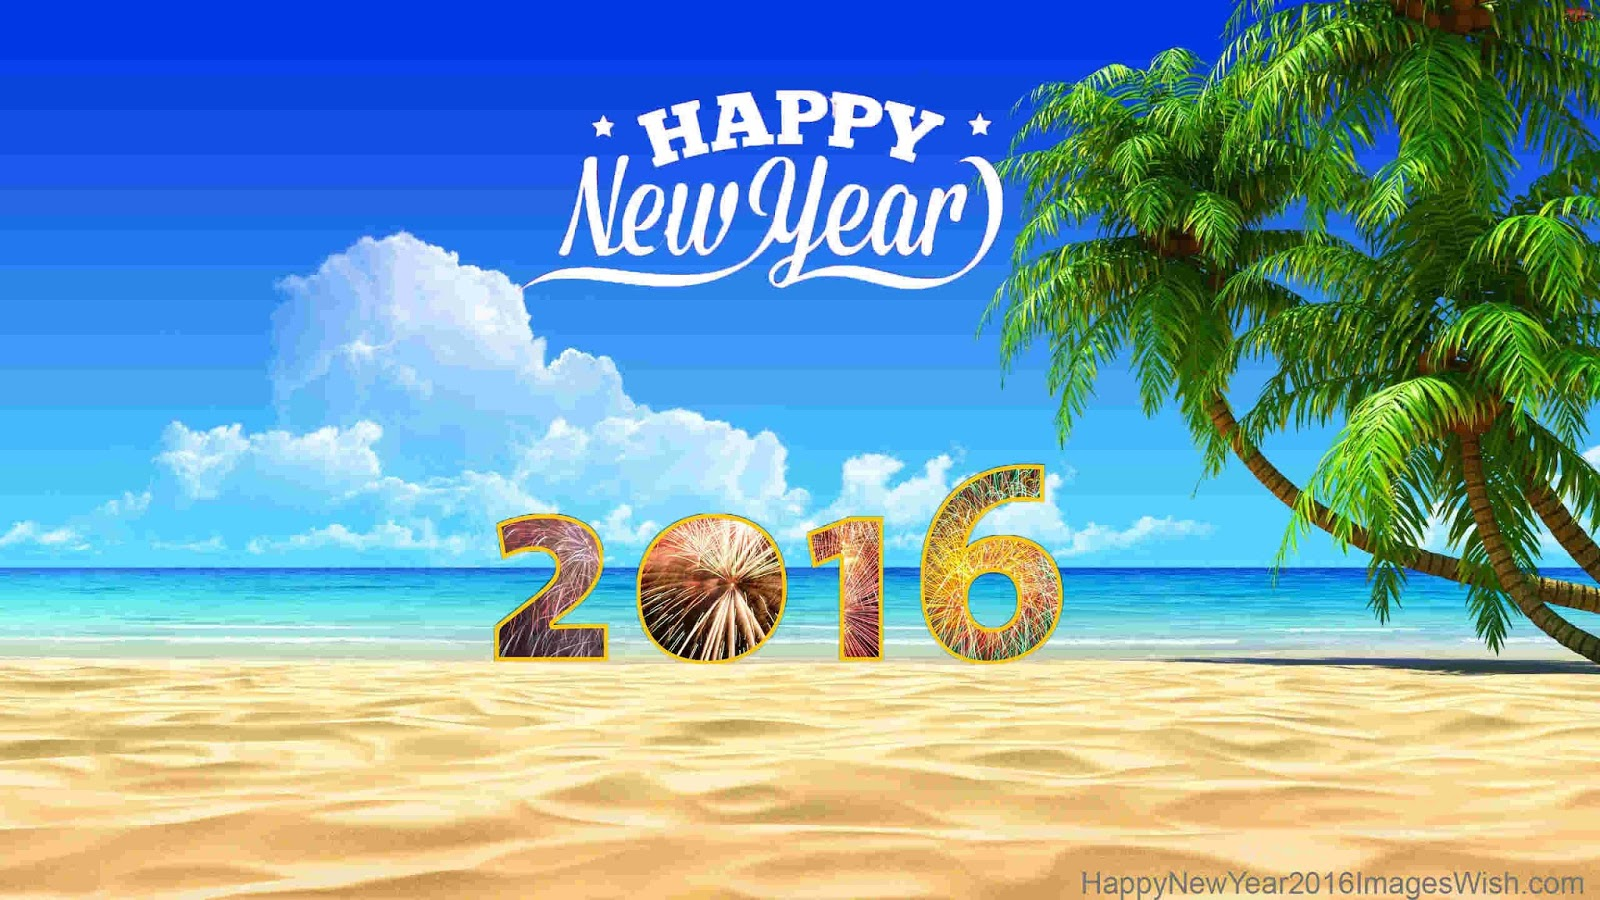 Tips for a Happy New Year 2016